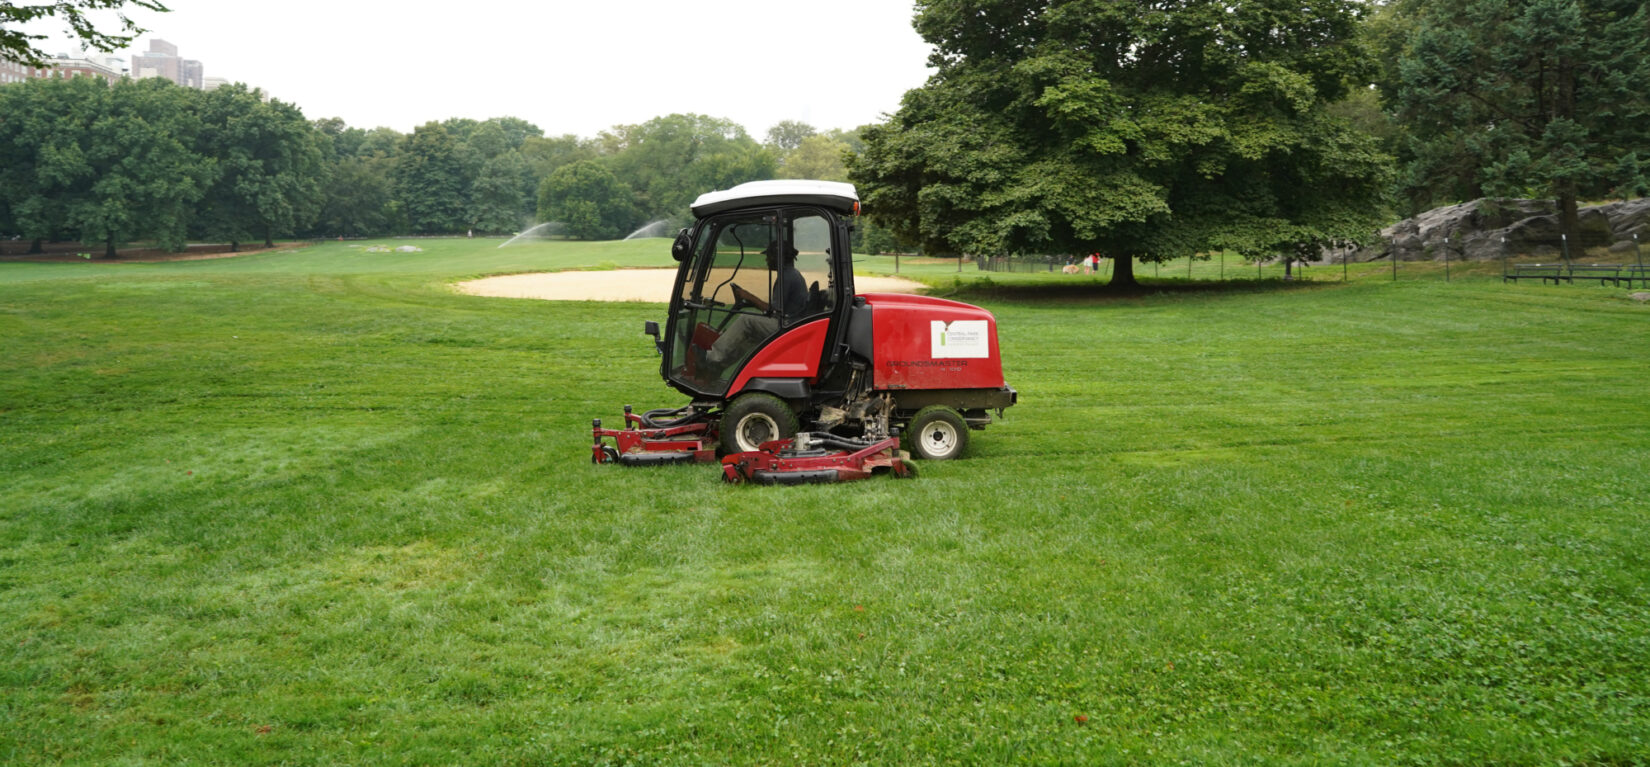 A riding mower trims a lawn near a ballfield